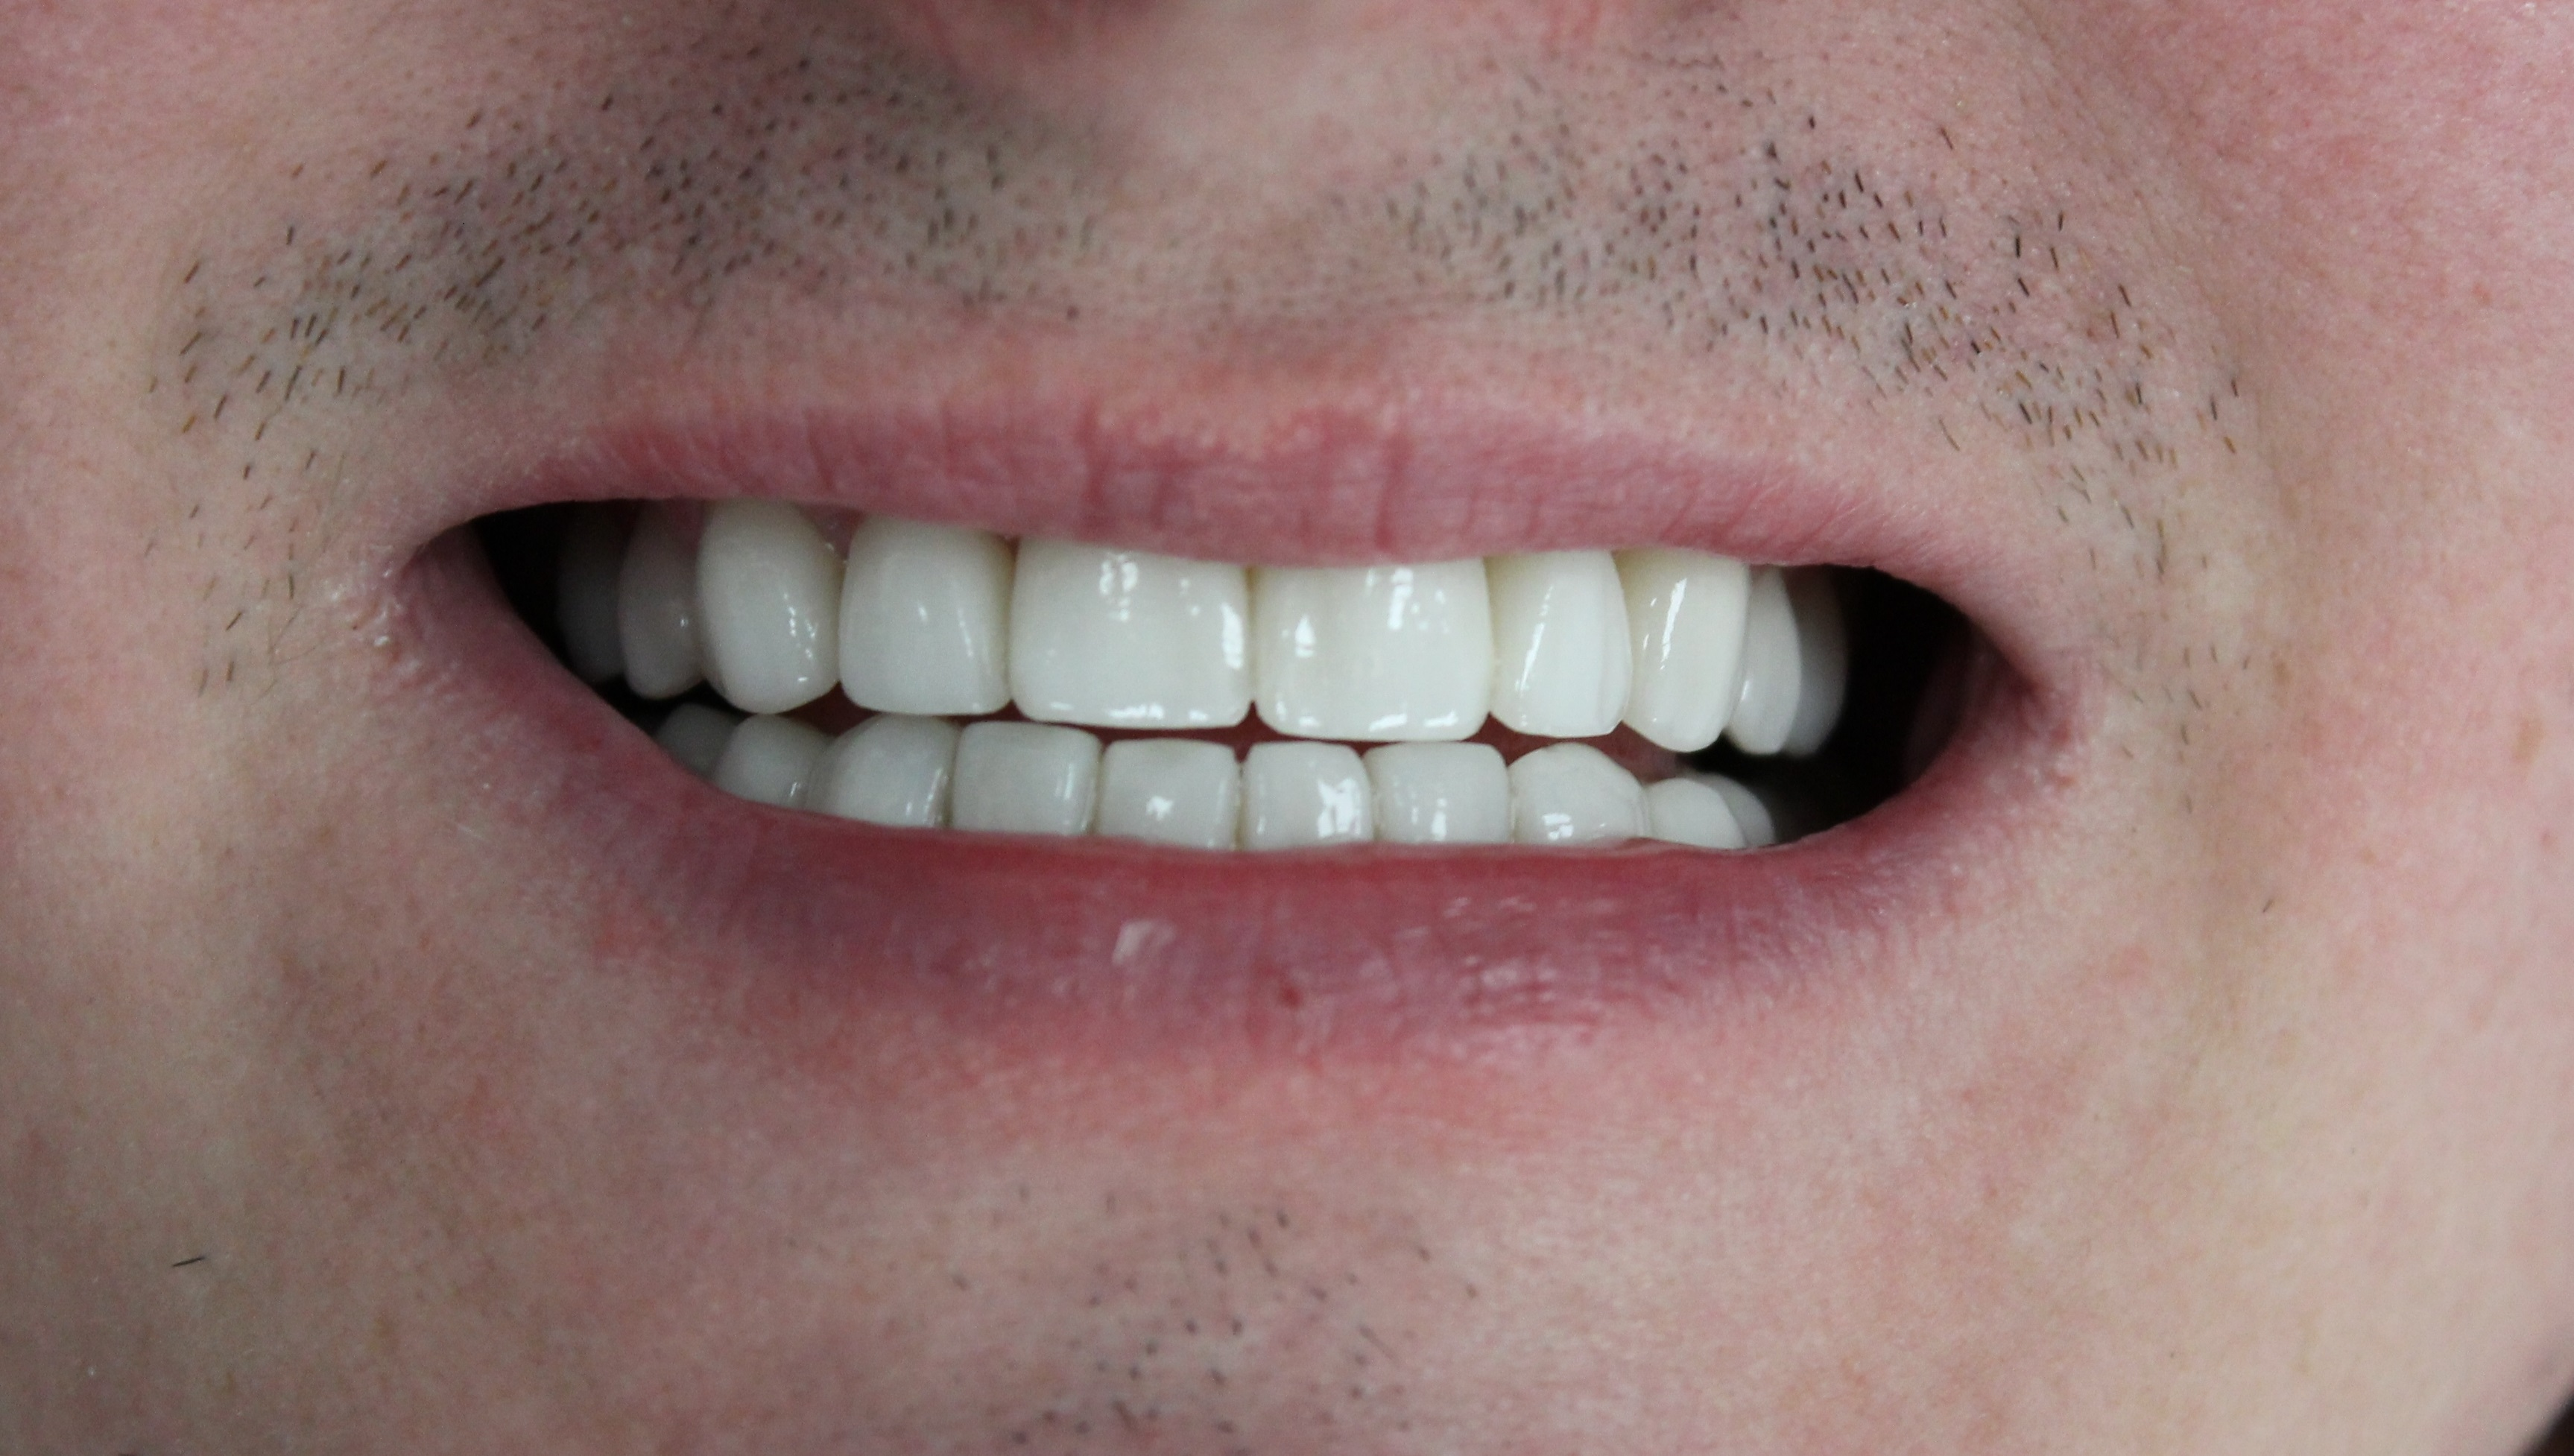 Smile Makeup with 10 upper and 10 lower veneers